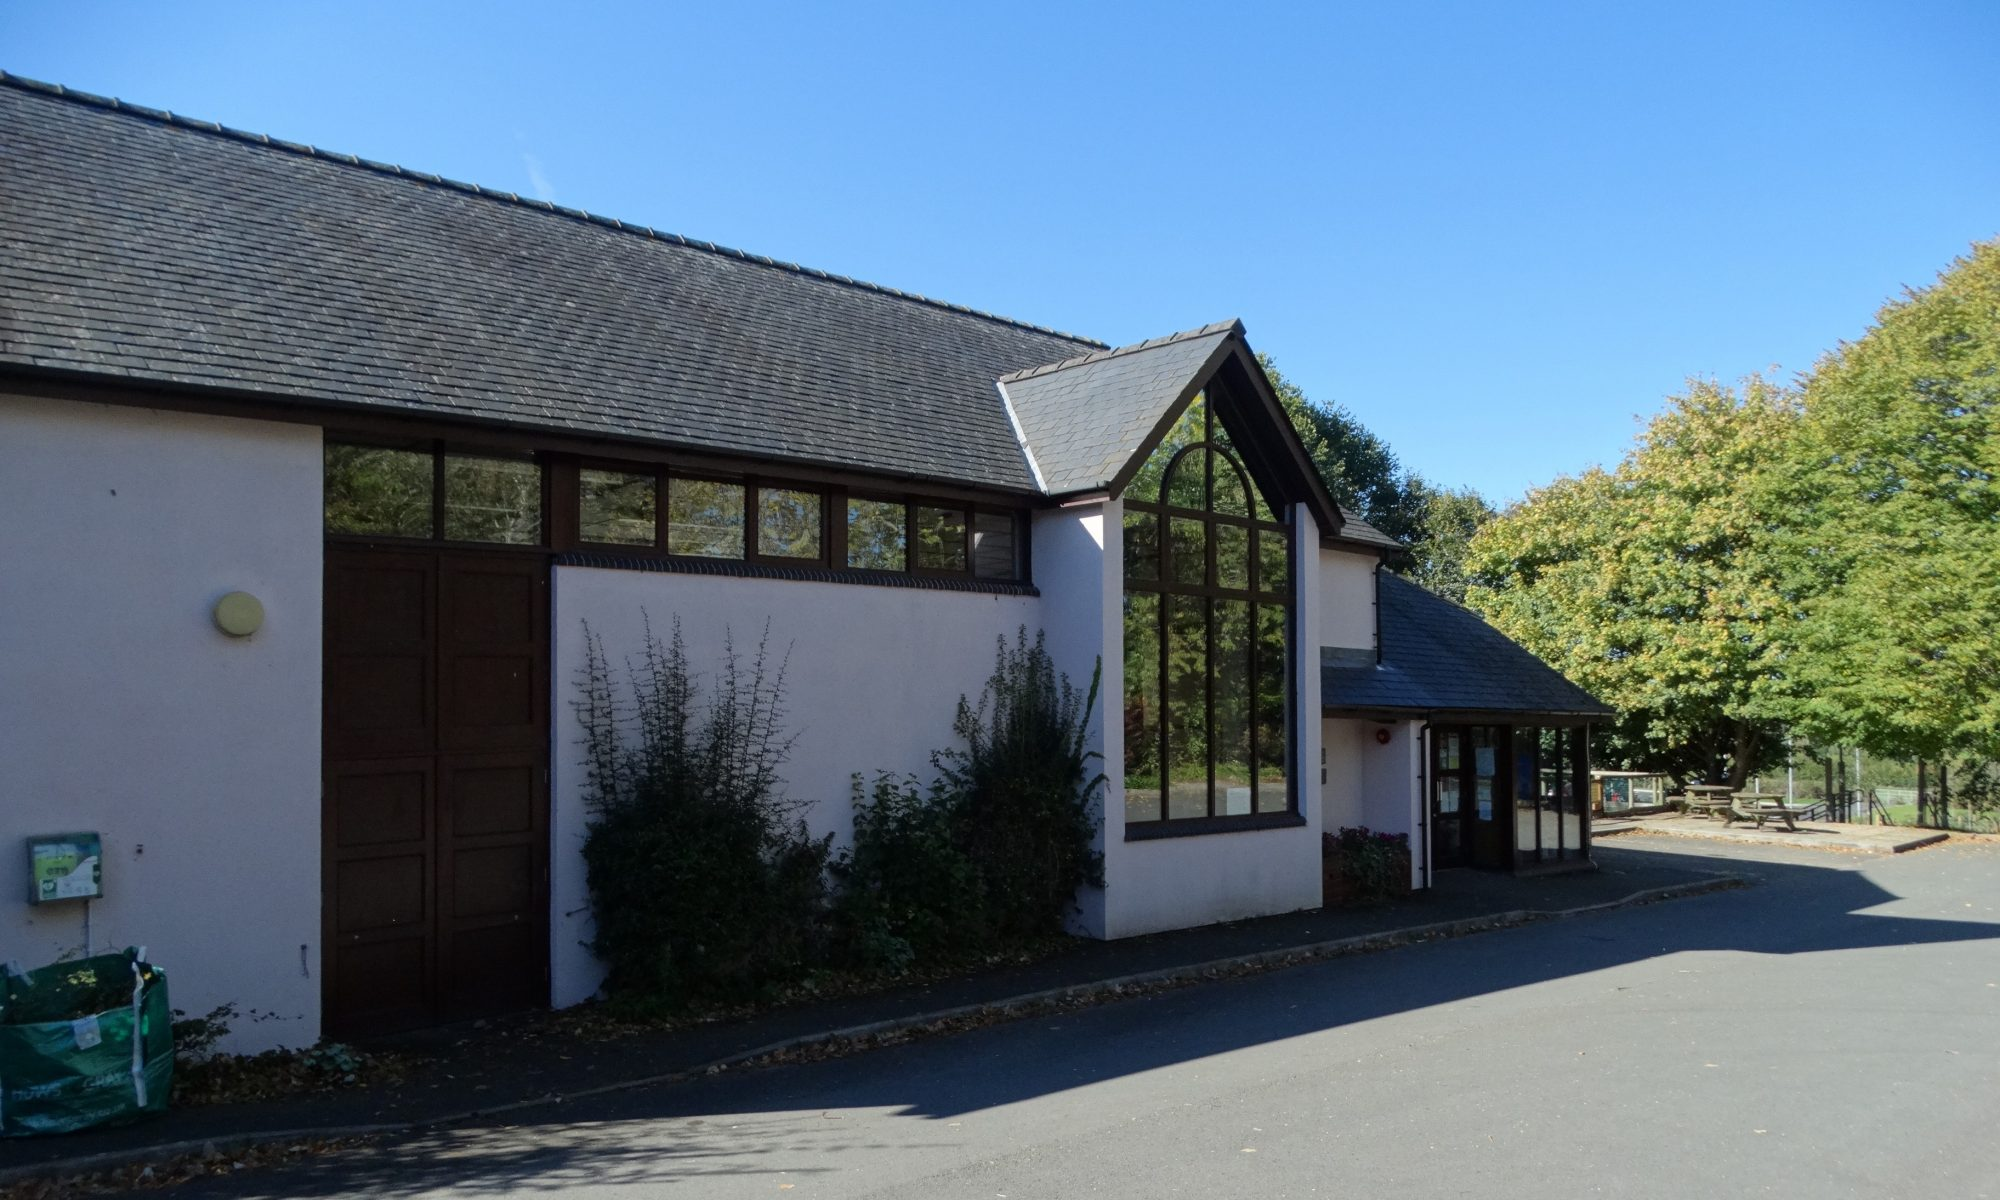 Llangors Youth & Community Centre